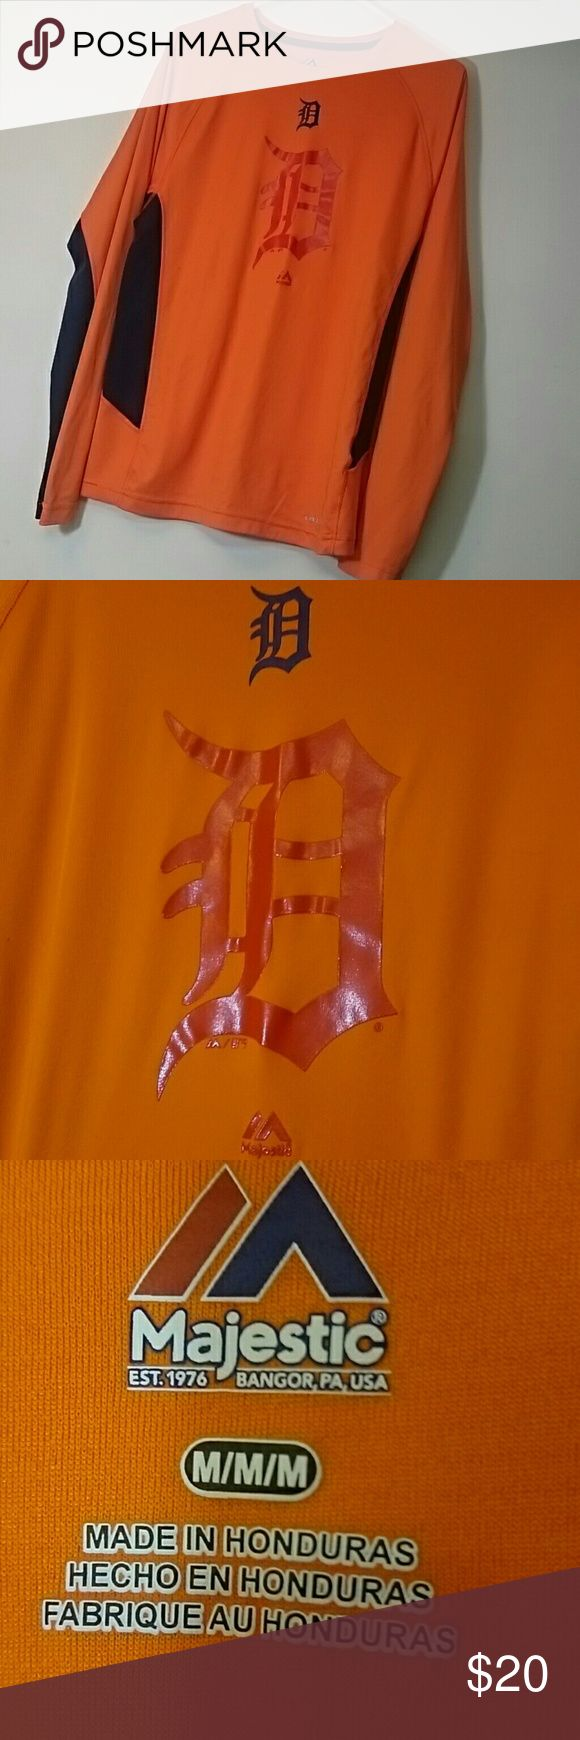 Detroit Tigers dri-fit Majestic long sleeved dri-fit shirt. Detroit Tigers. Bright orange and navy, very comfortable. Only worn a handful of times. Small snag along the side (shown in pictures), no stains. Majestic Shirts Tees - Long Sleeve